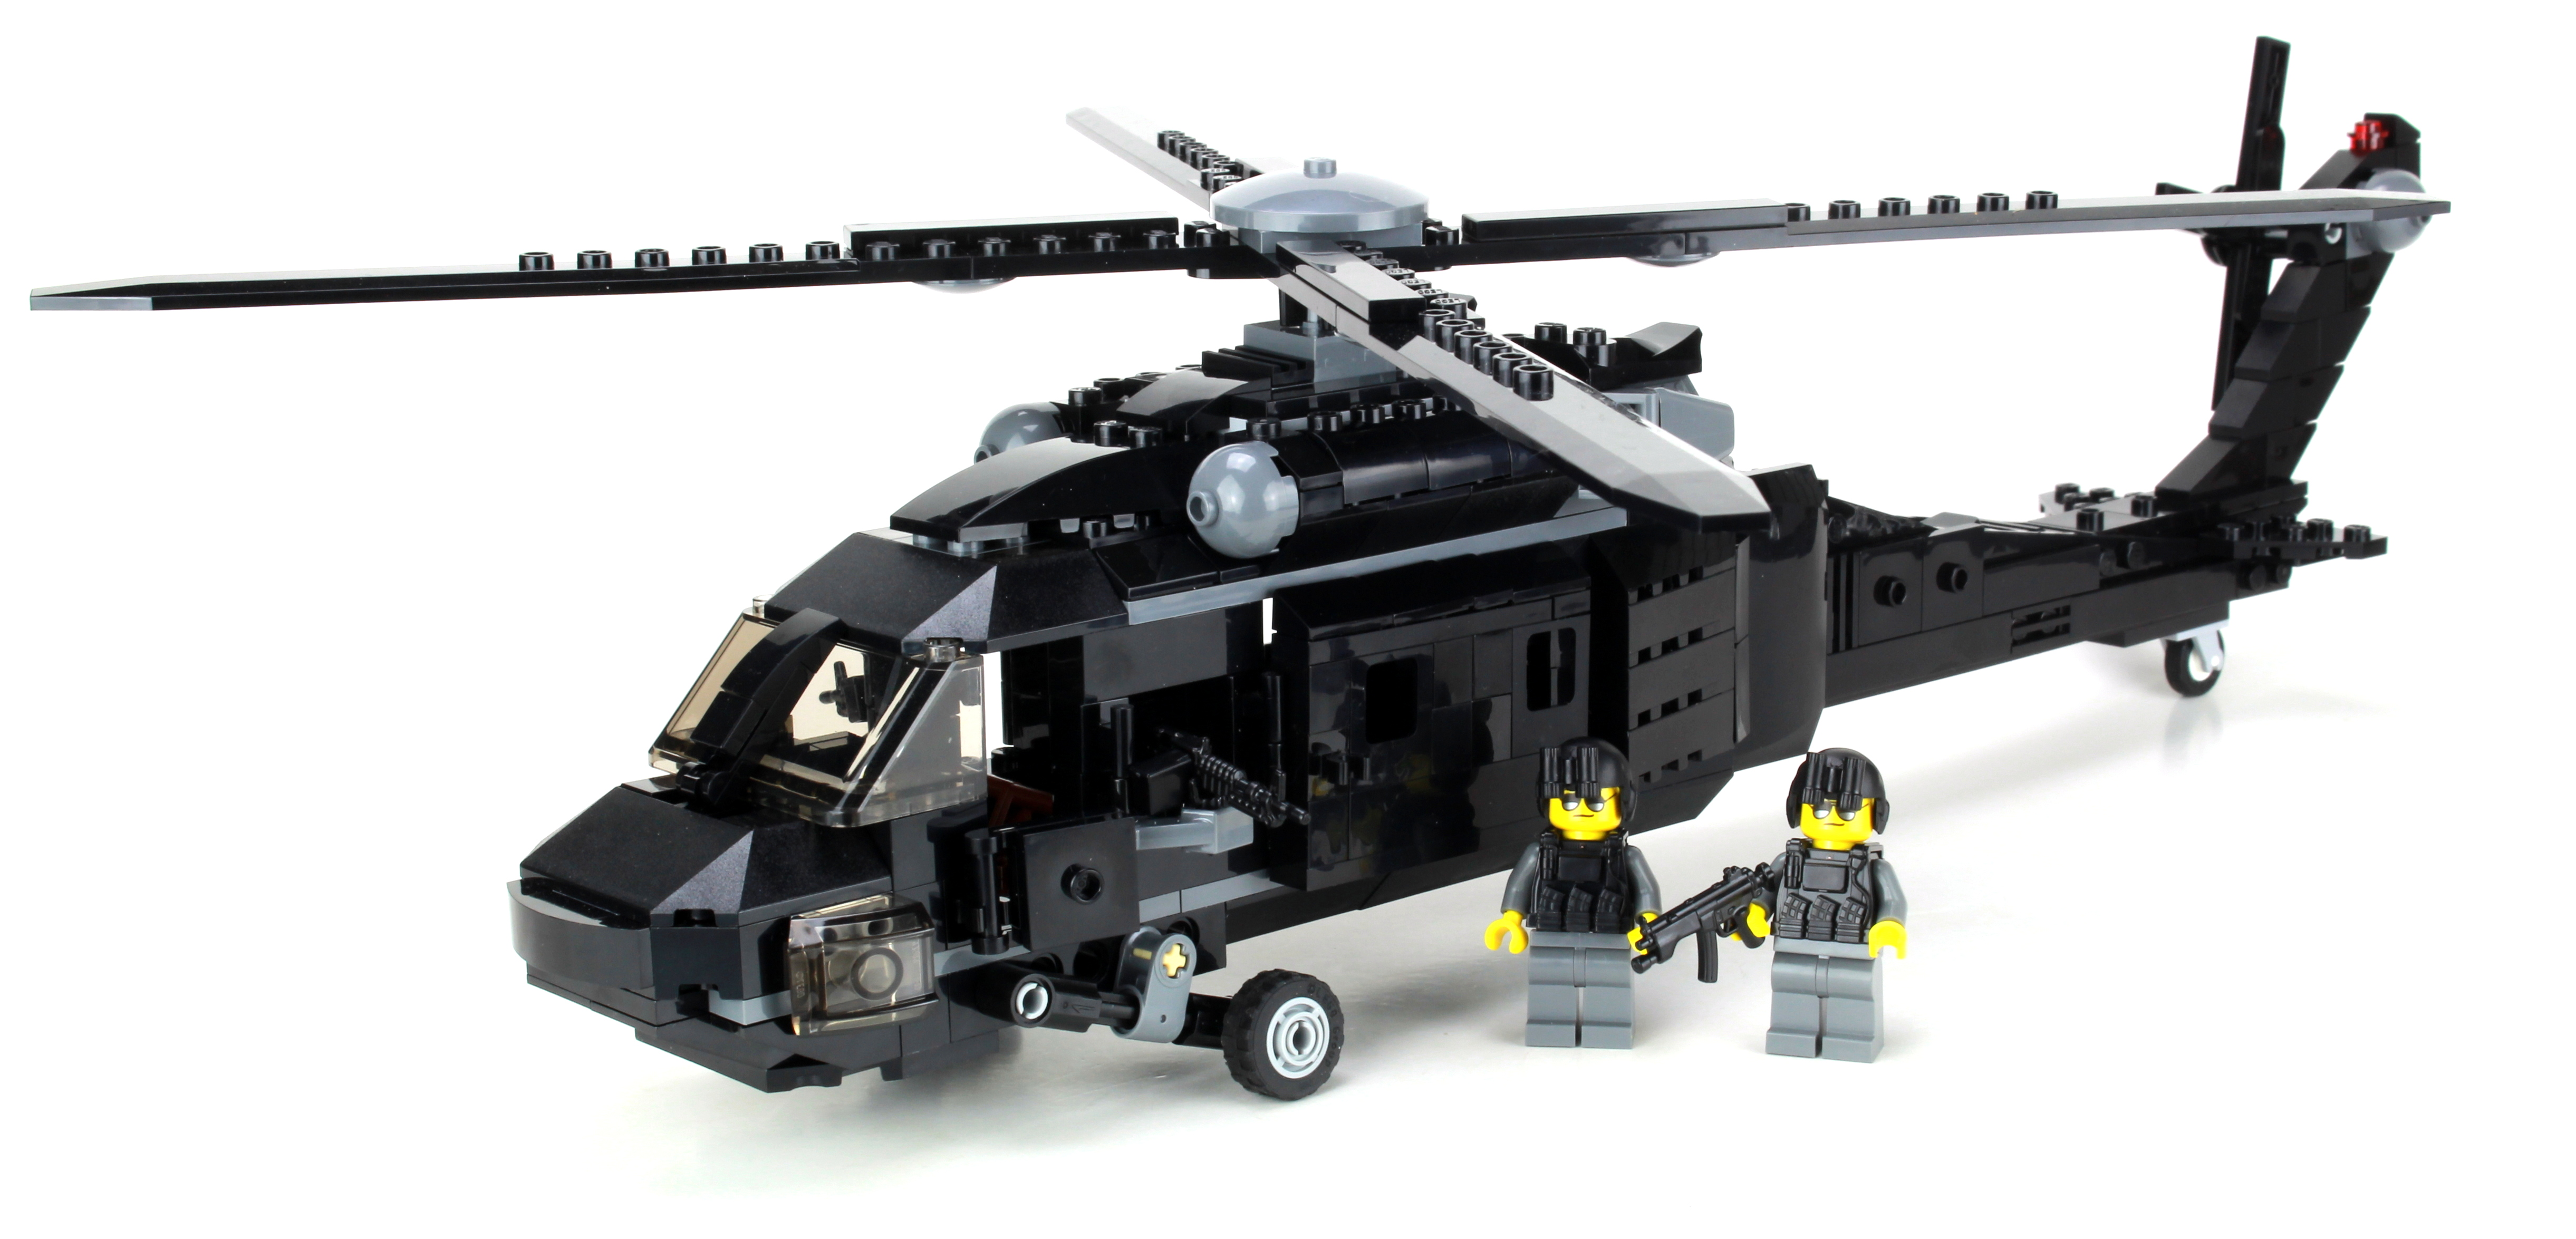 Uh 60 Army Black Hawk Helicopter Made With Real Lego Bricks